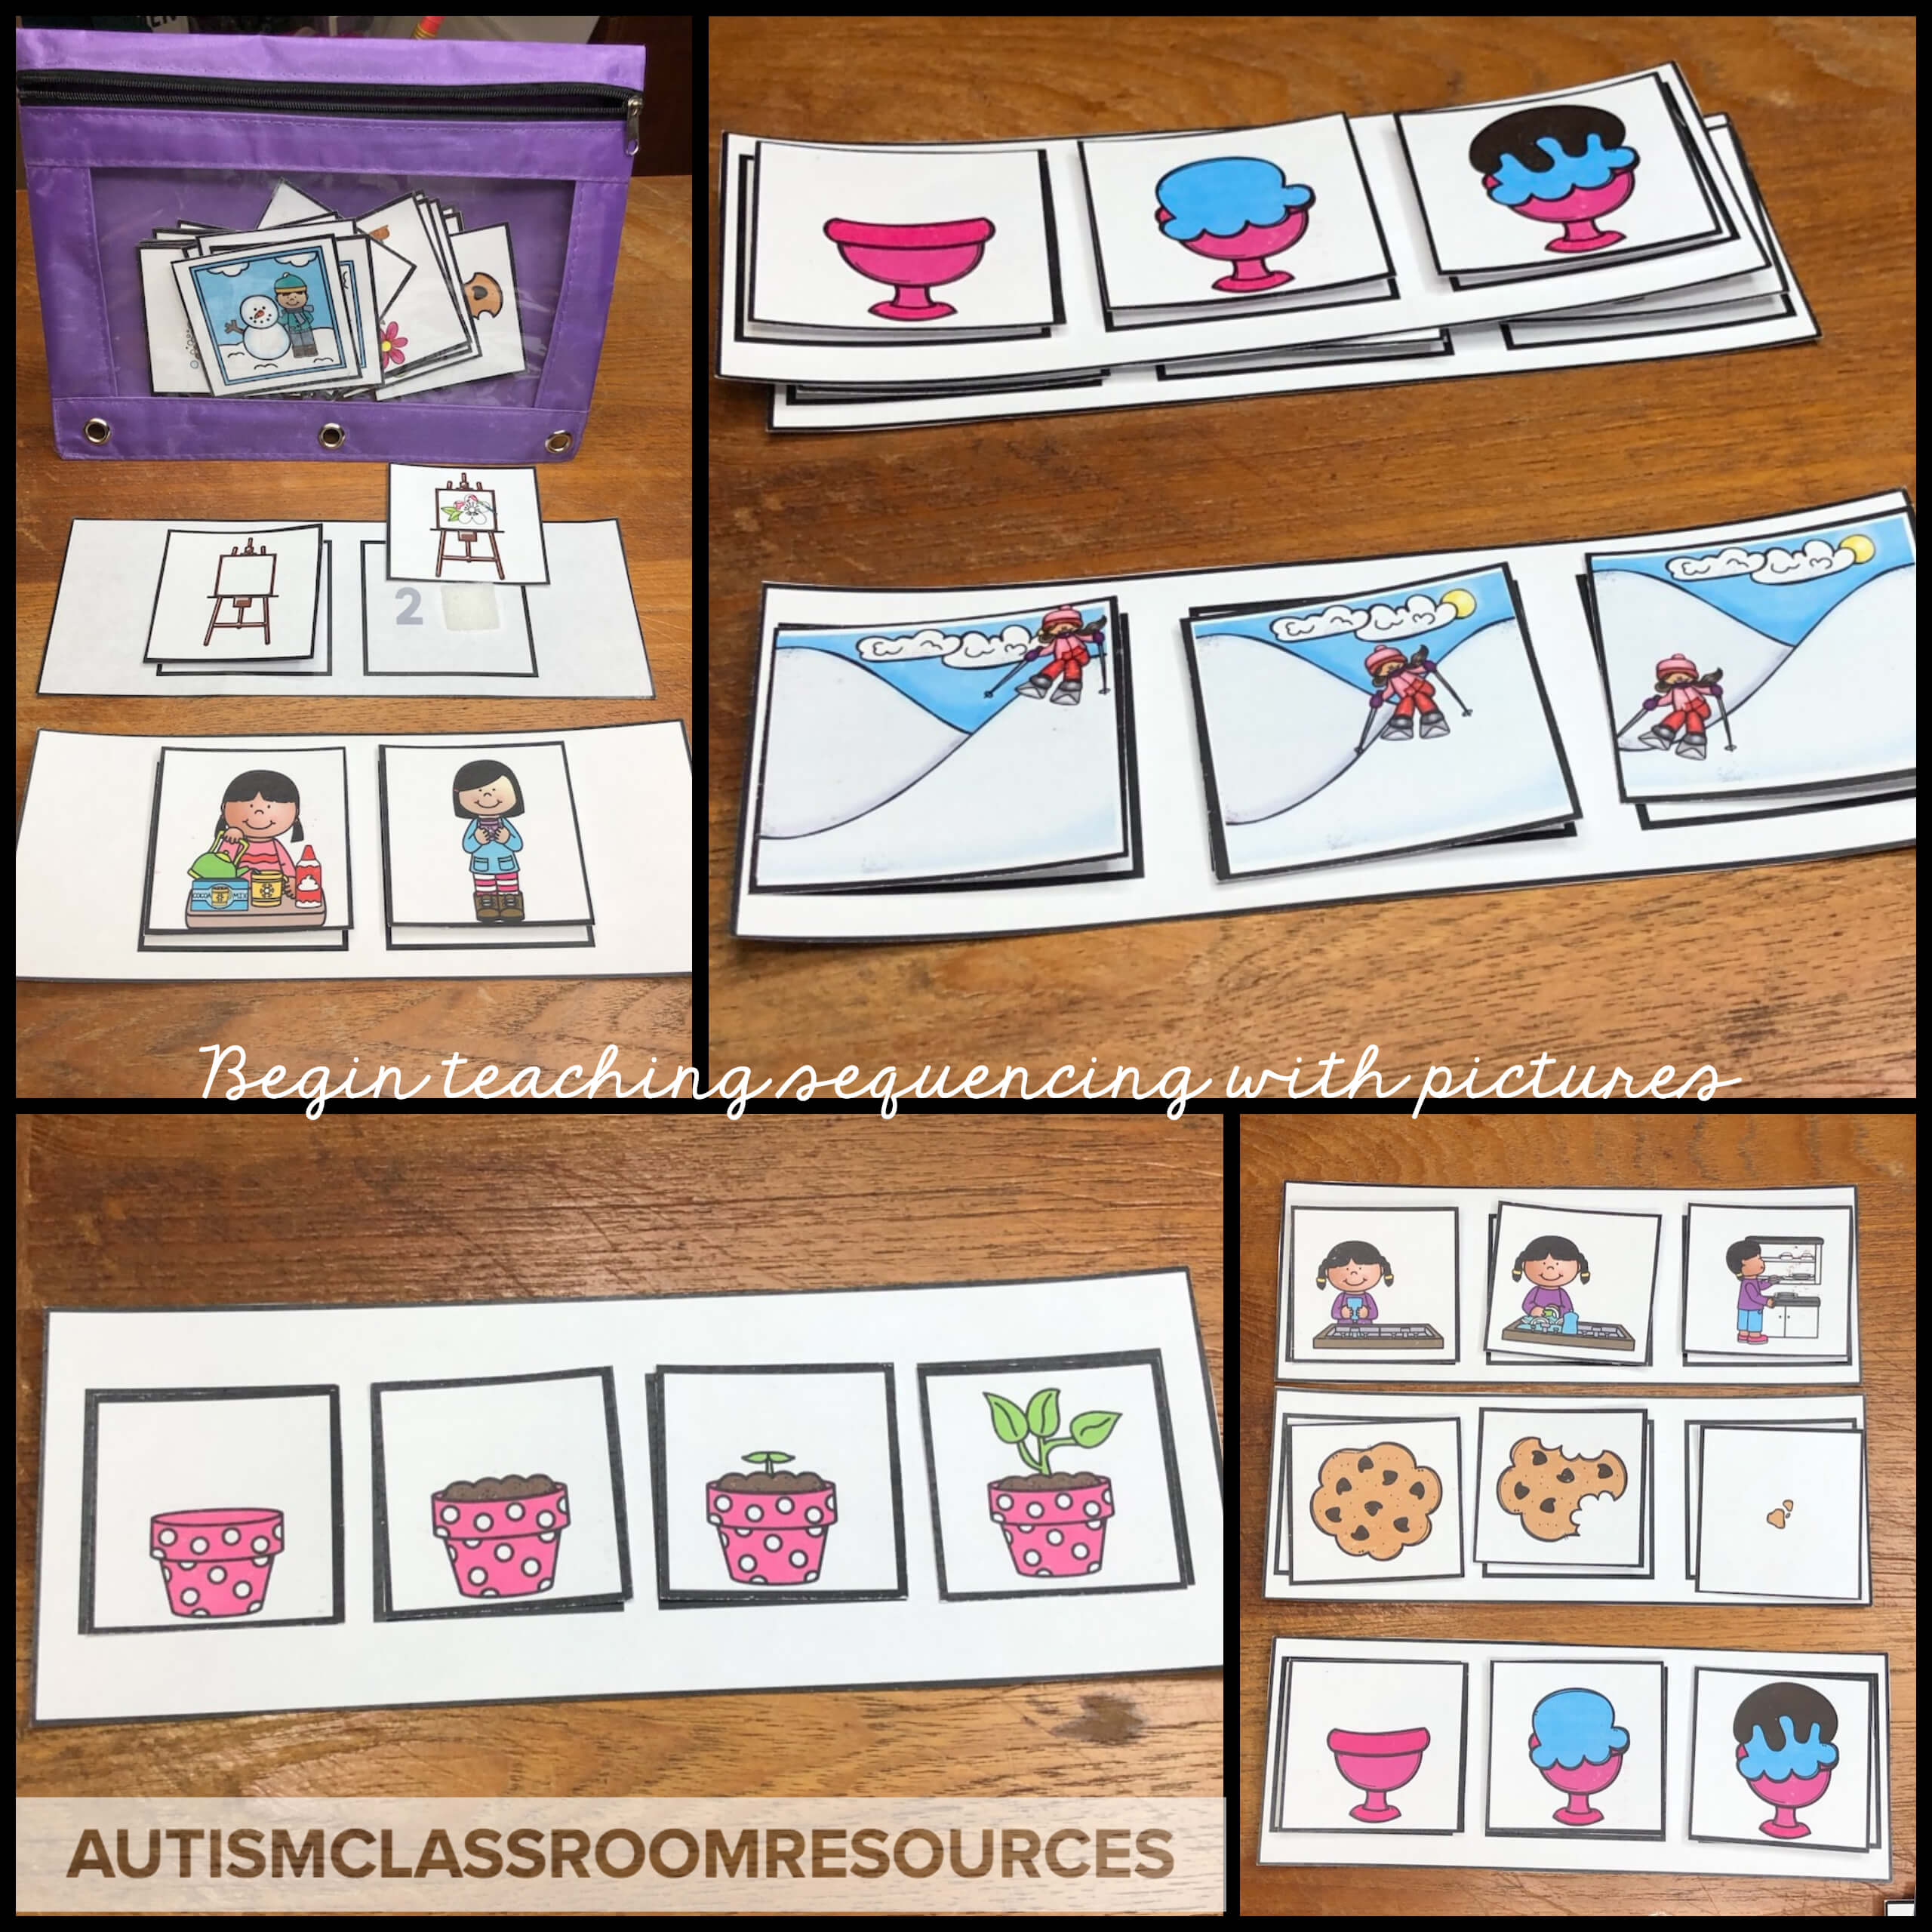 Many students with autism and other disabilities have difficulty figuring out what they should attend to in instructional materials. So, by paring it down to just the basics of pictures, they begin to learn the concept more quickly.